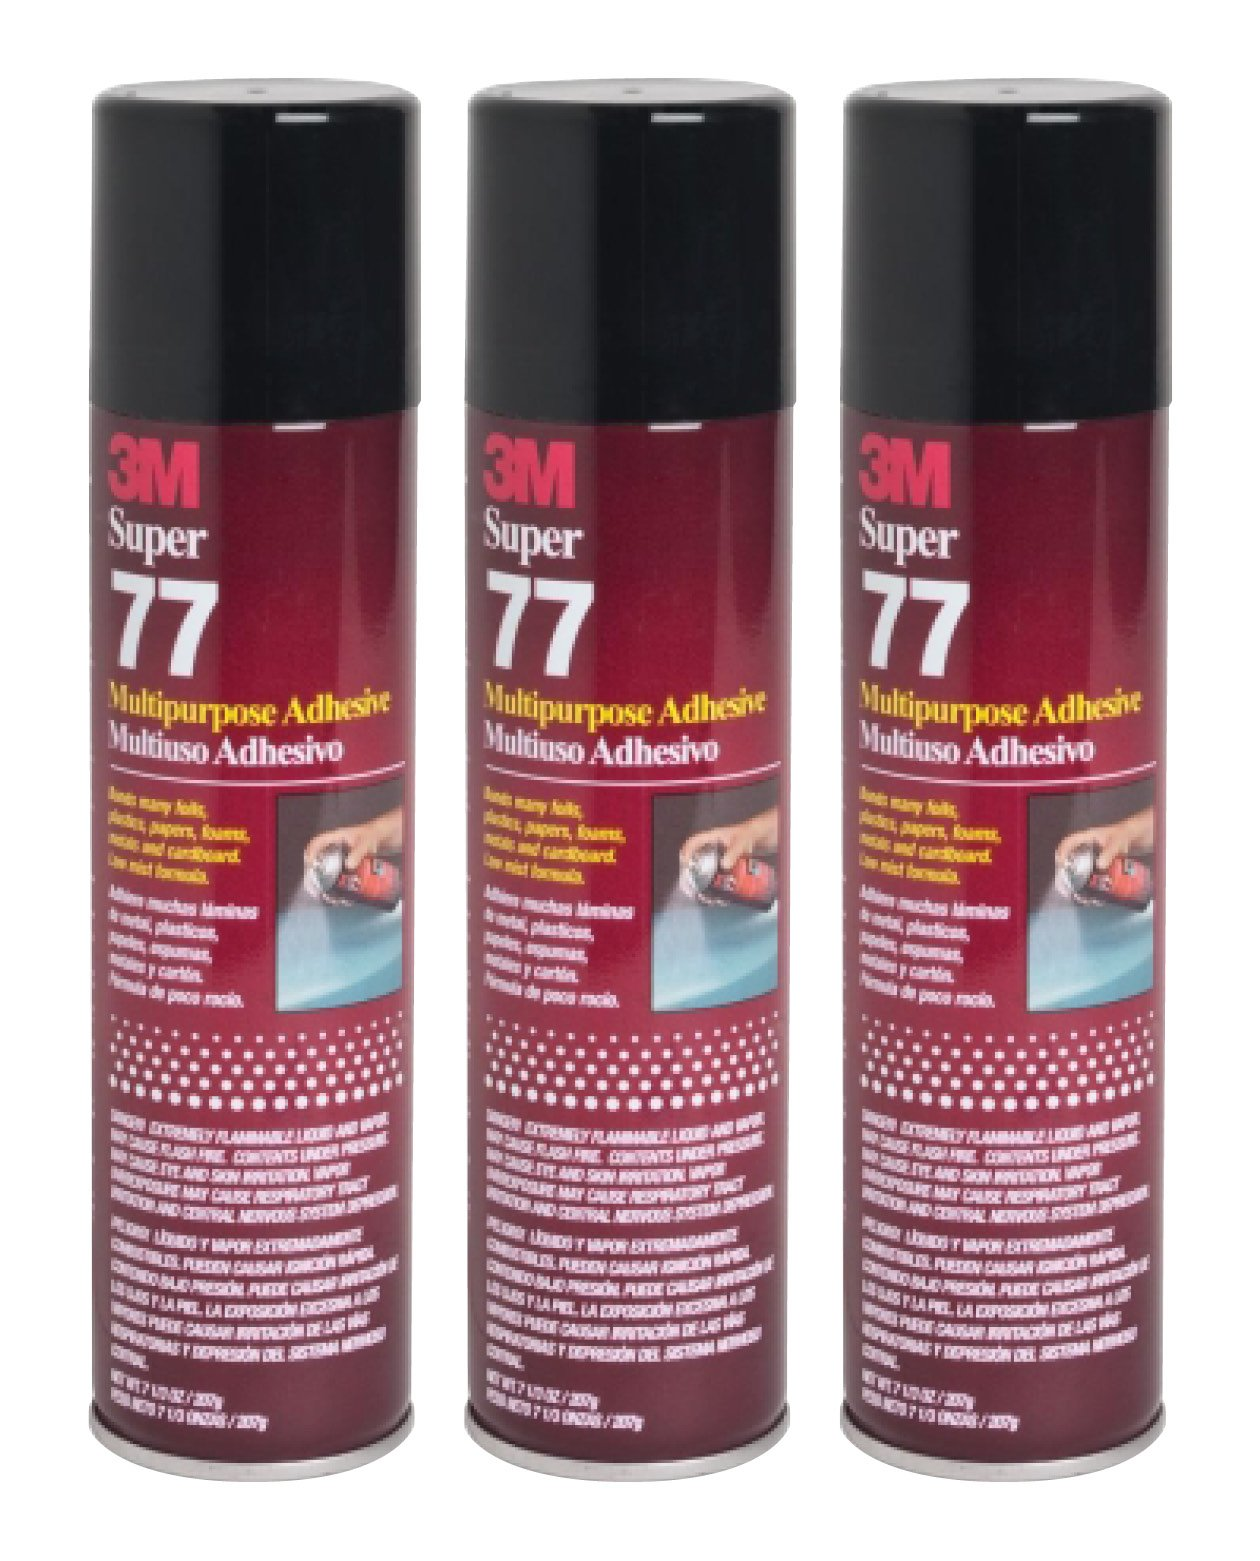 QTY3 3M SUPER 77 7.3 OZ LARGE SPRAY GLUE CAN MULTIPURPOSE ADHESIVE by 3M SUPER 77